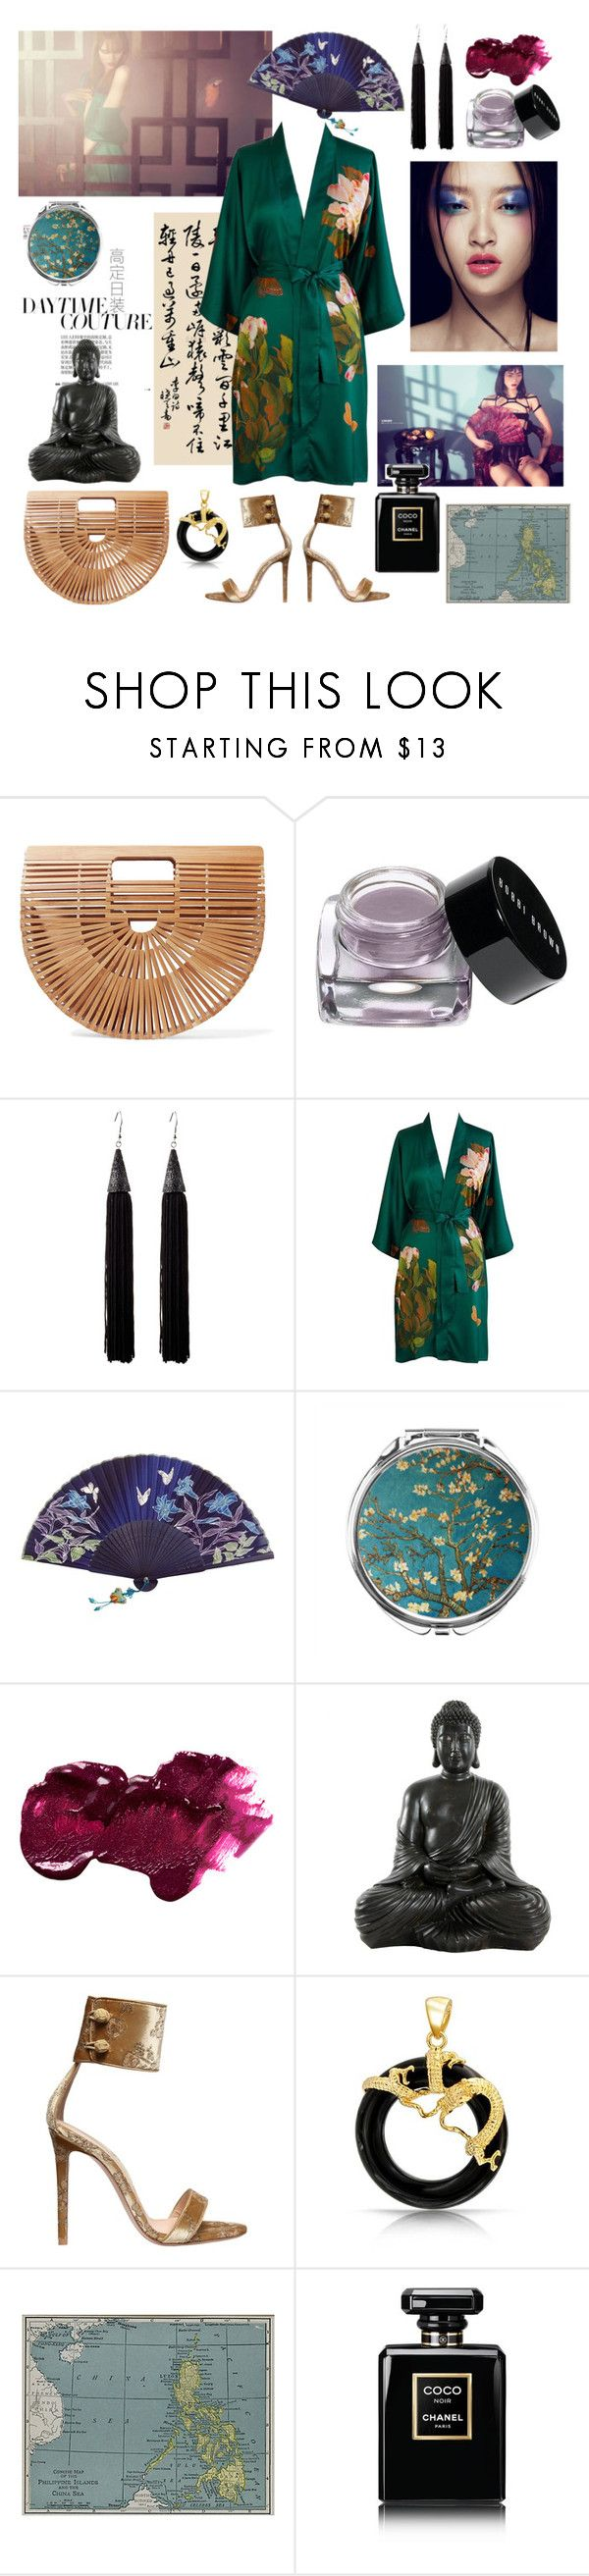 """""""Tales of Far East"""" by sophier ❤ liked on Polyvore featuring MYF, Cult Gaia, Bobbi Brown Cosmetics, Eddie Borgo, Anastasia Beverly Hills, Gianvito Rossi, Bling Jewelry, Campbell's Melange and Chanel"""